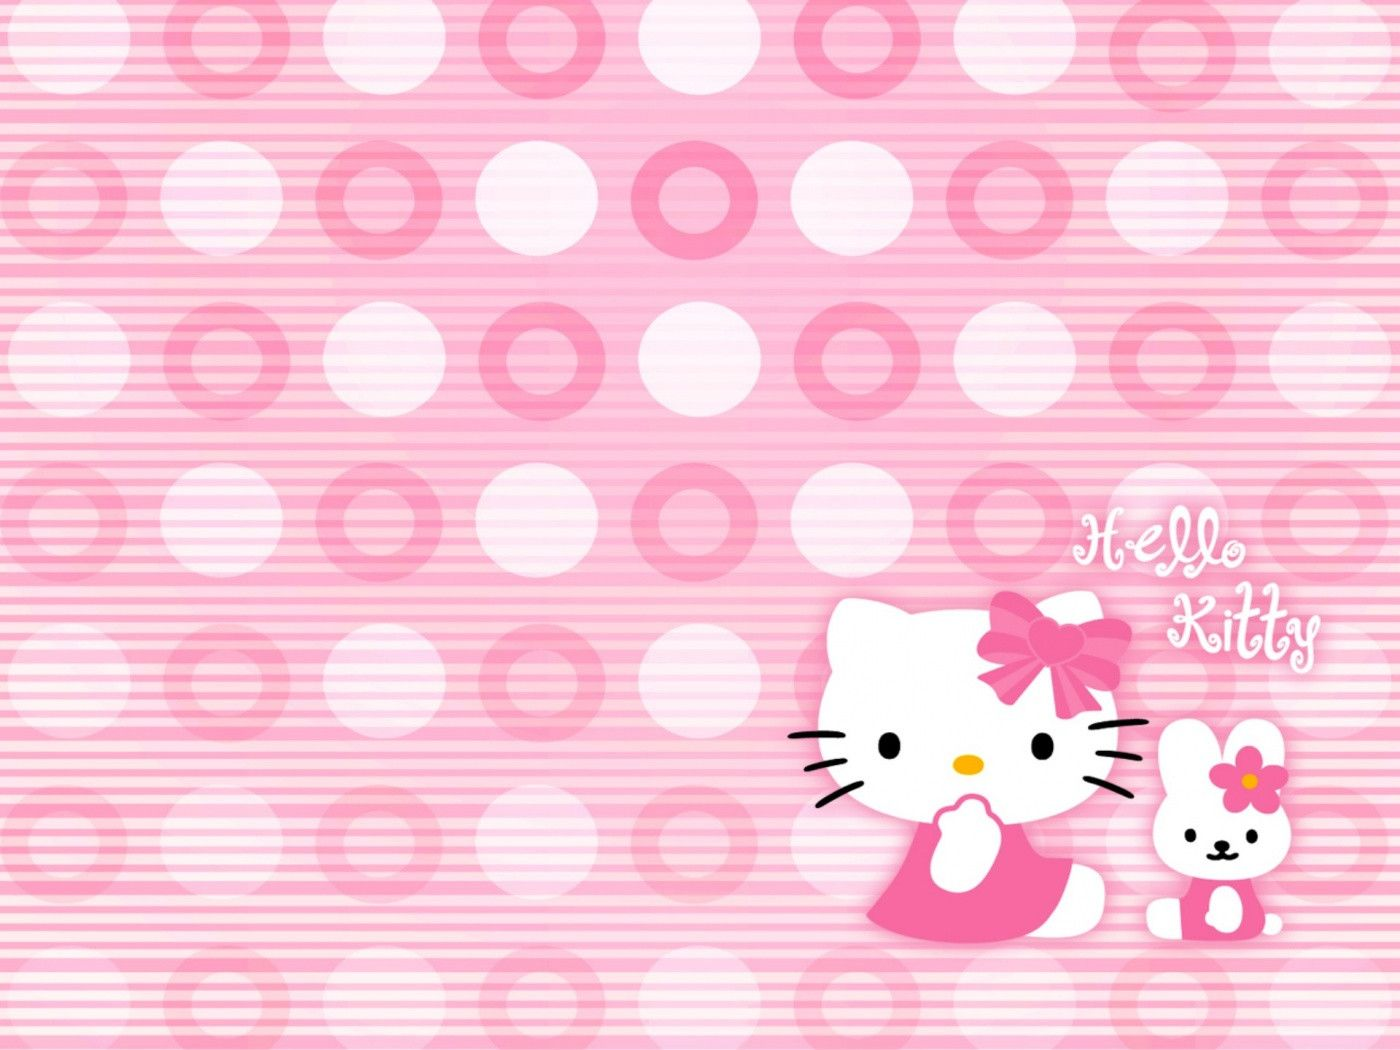 Hello Kitty Hd Wallpapers Wallpaper 1400x1050